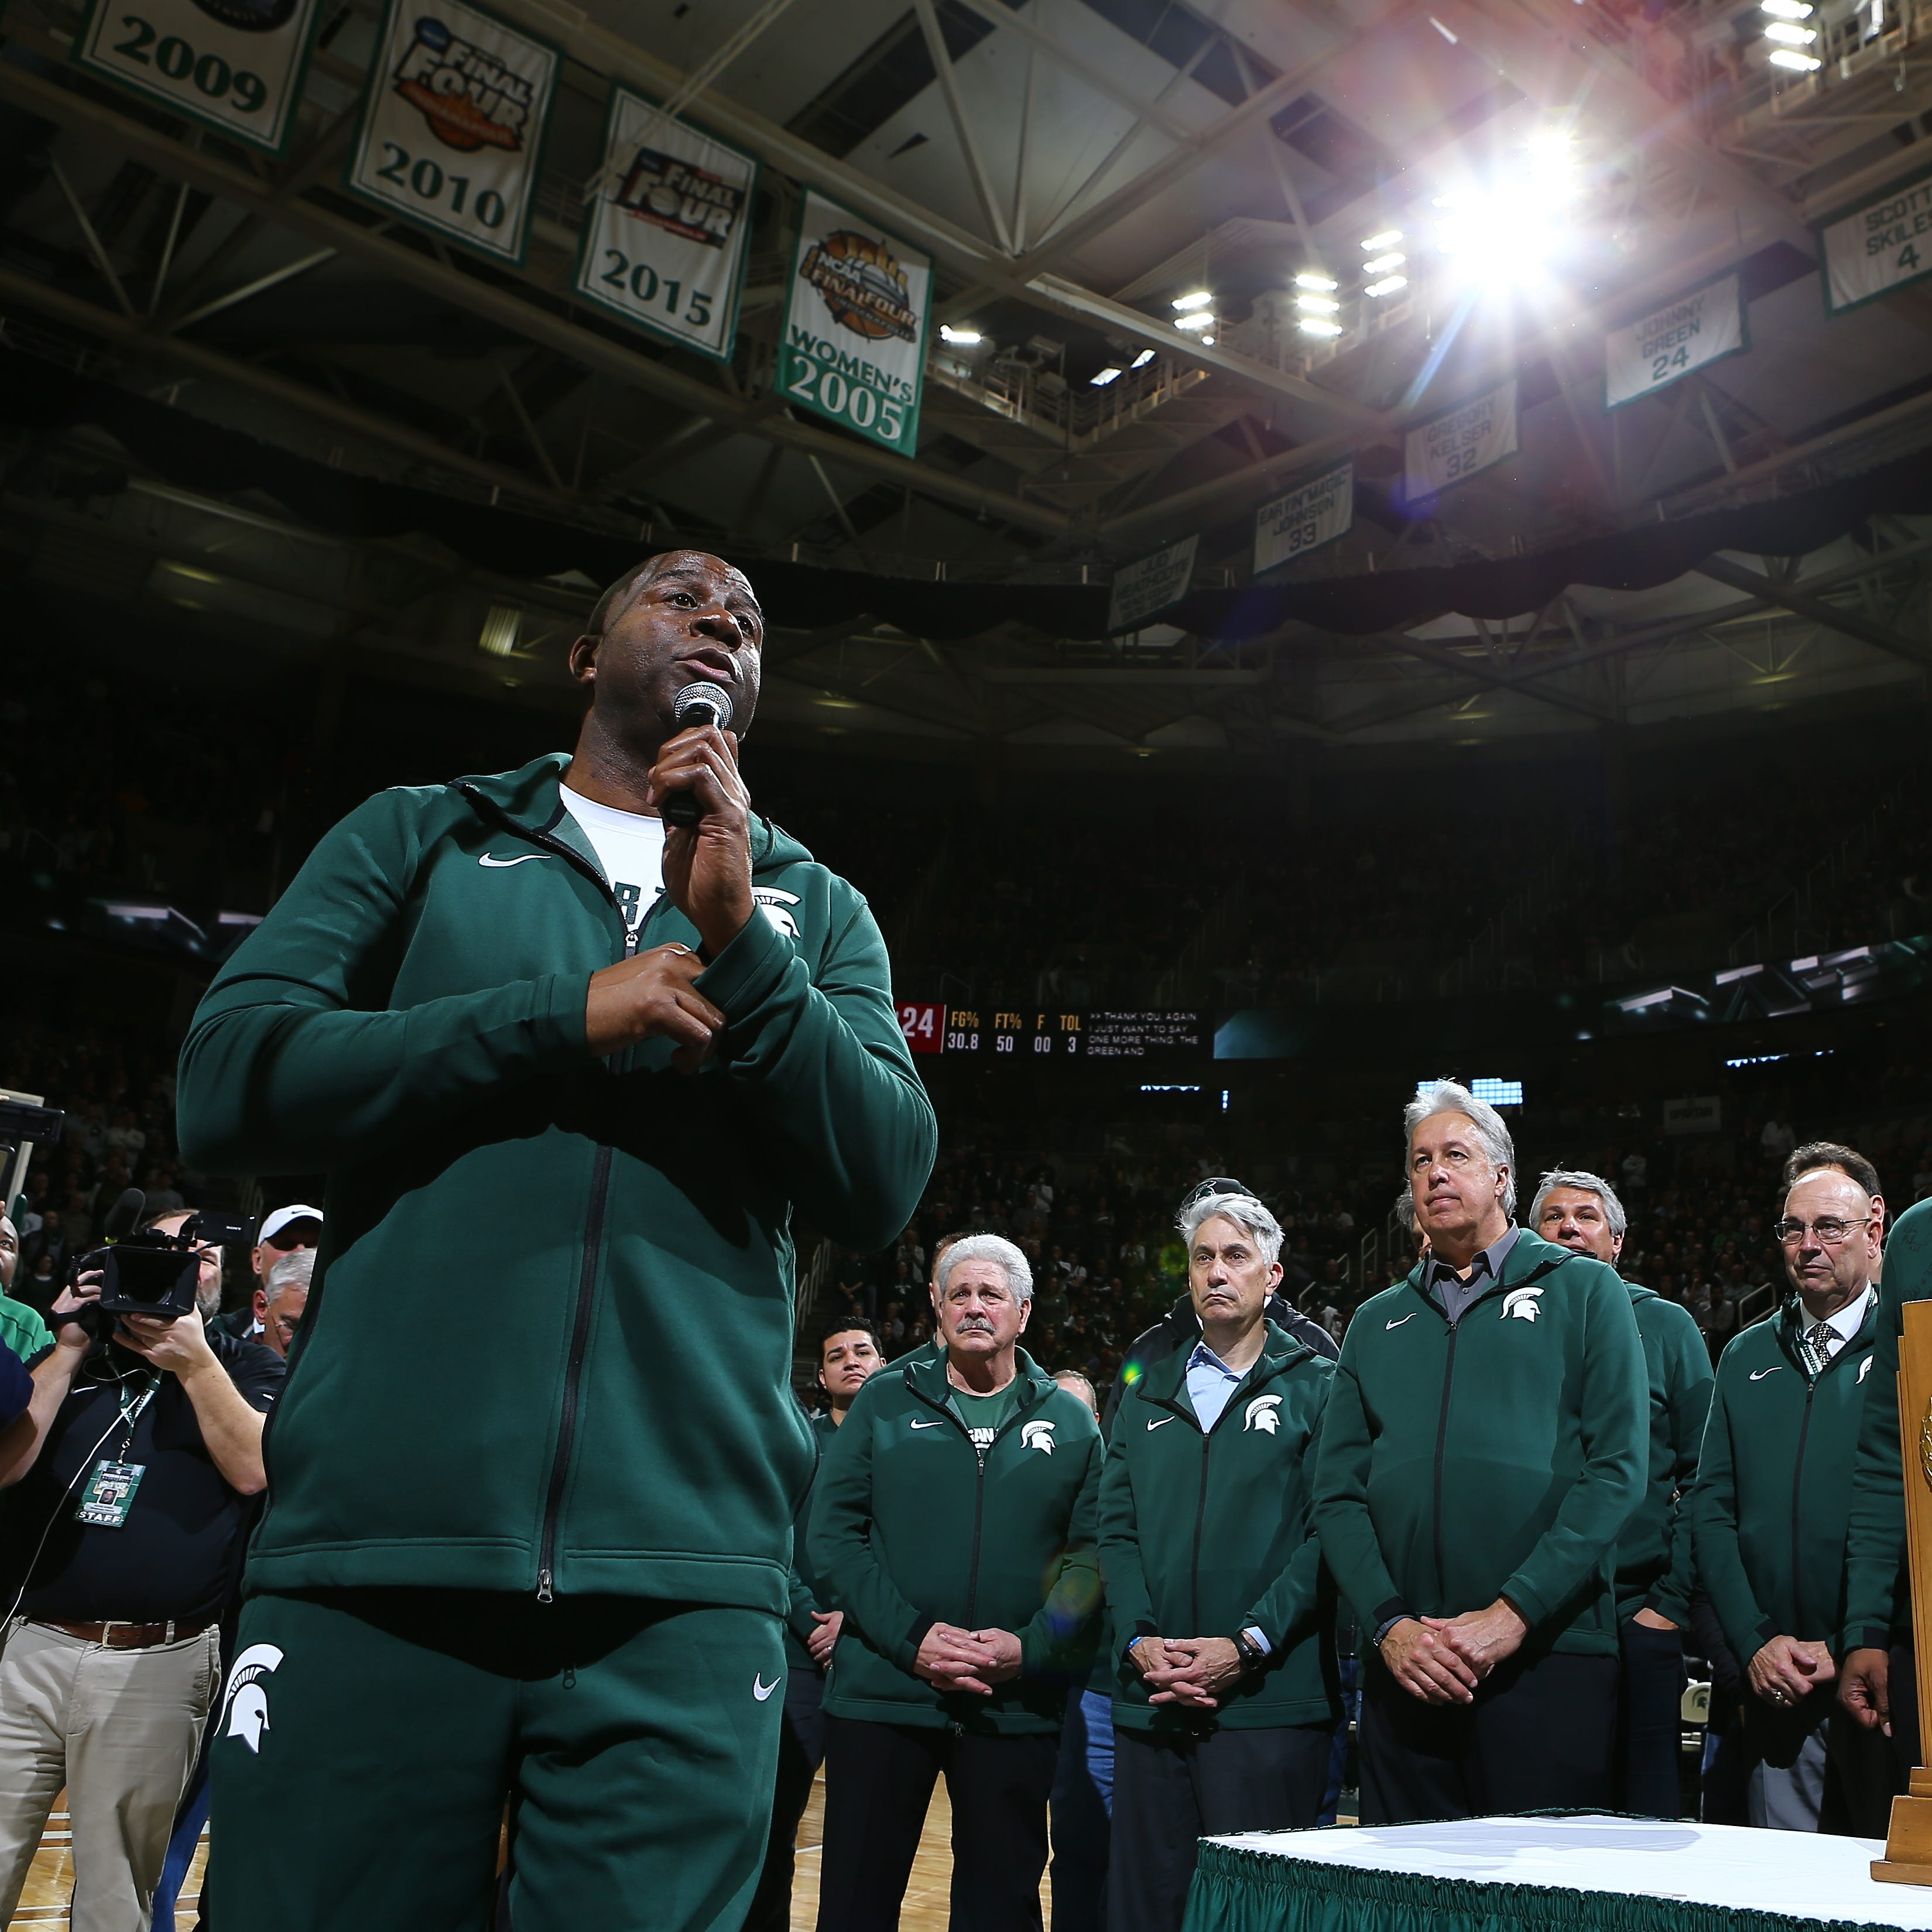 Magic Johnson urges Michigan State to 'support each other' in tough times